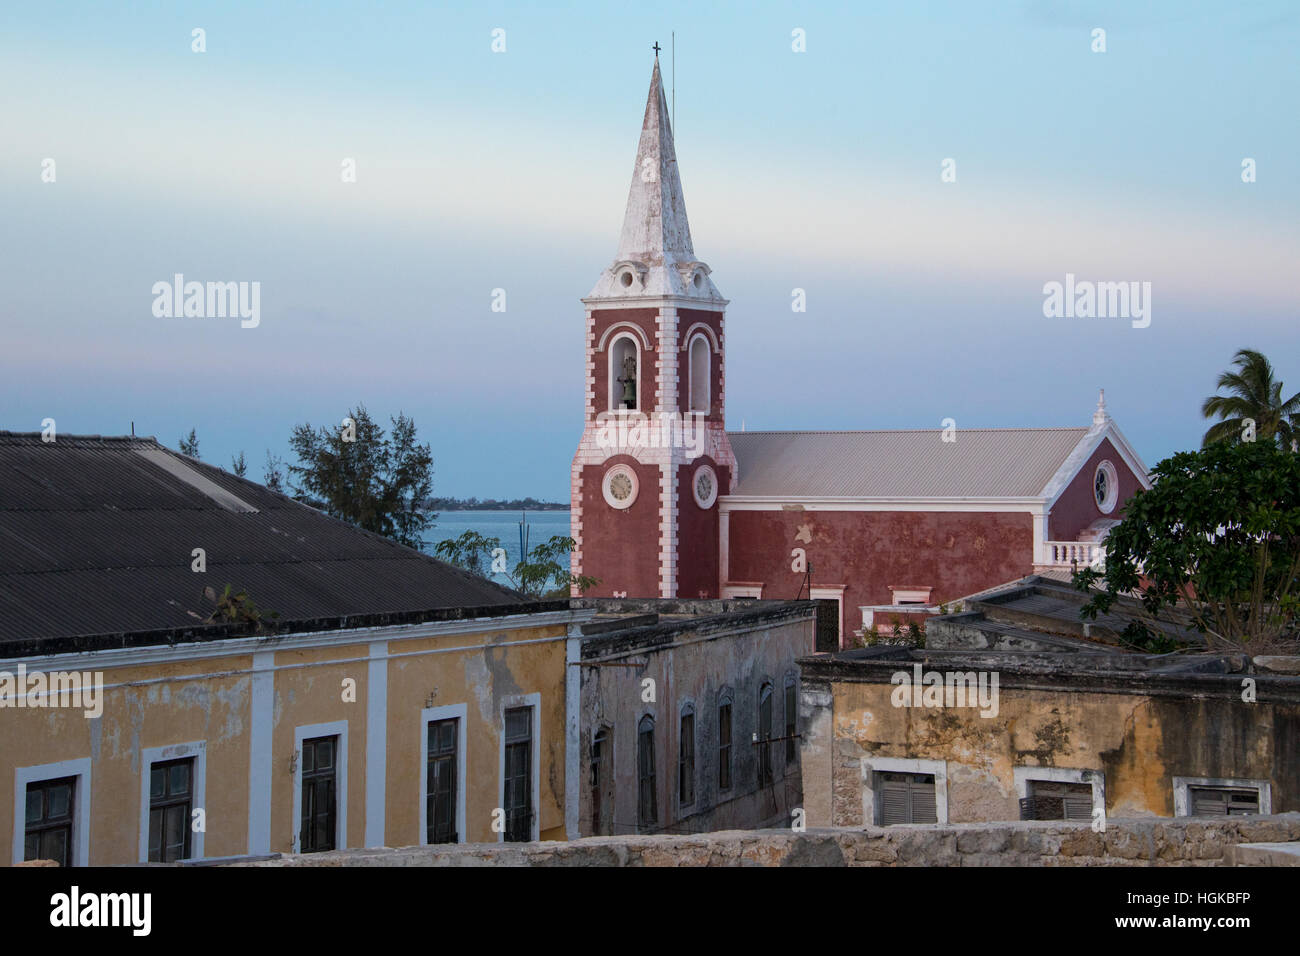 Chapel of Sao Paulo on Ilha de Mozambique, Africa - Stock Image